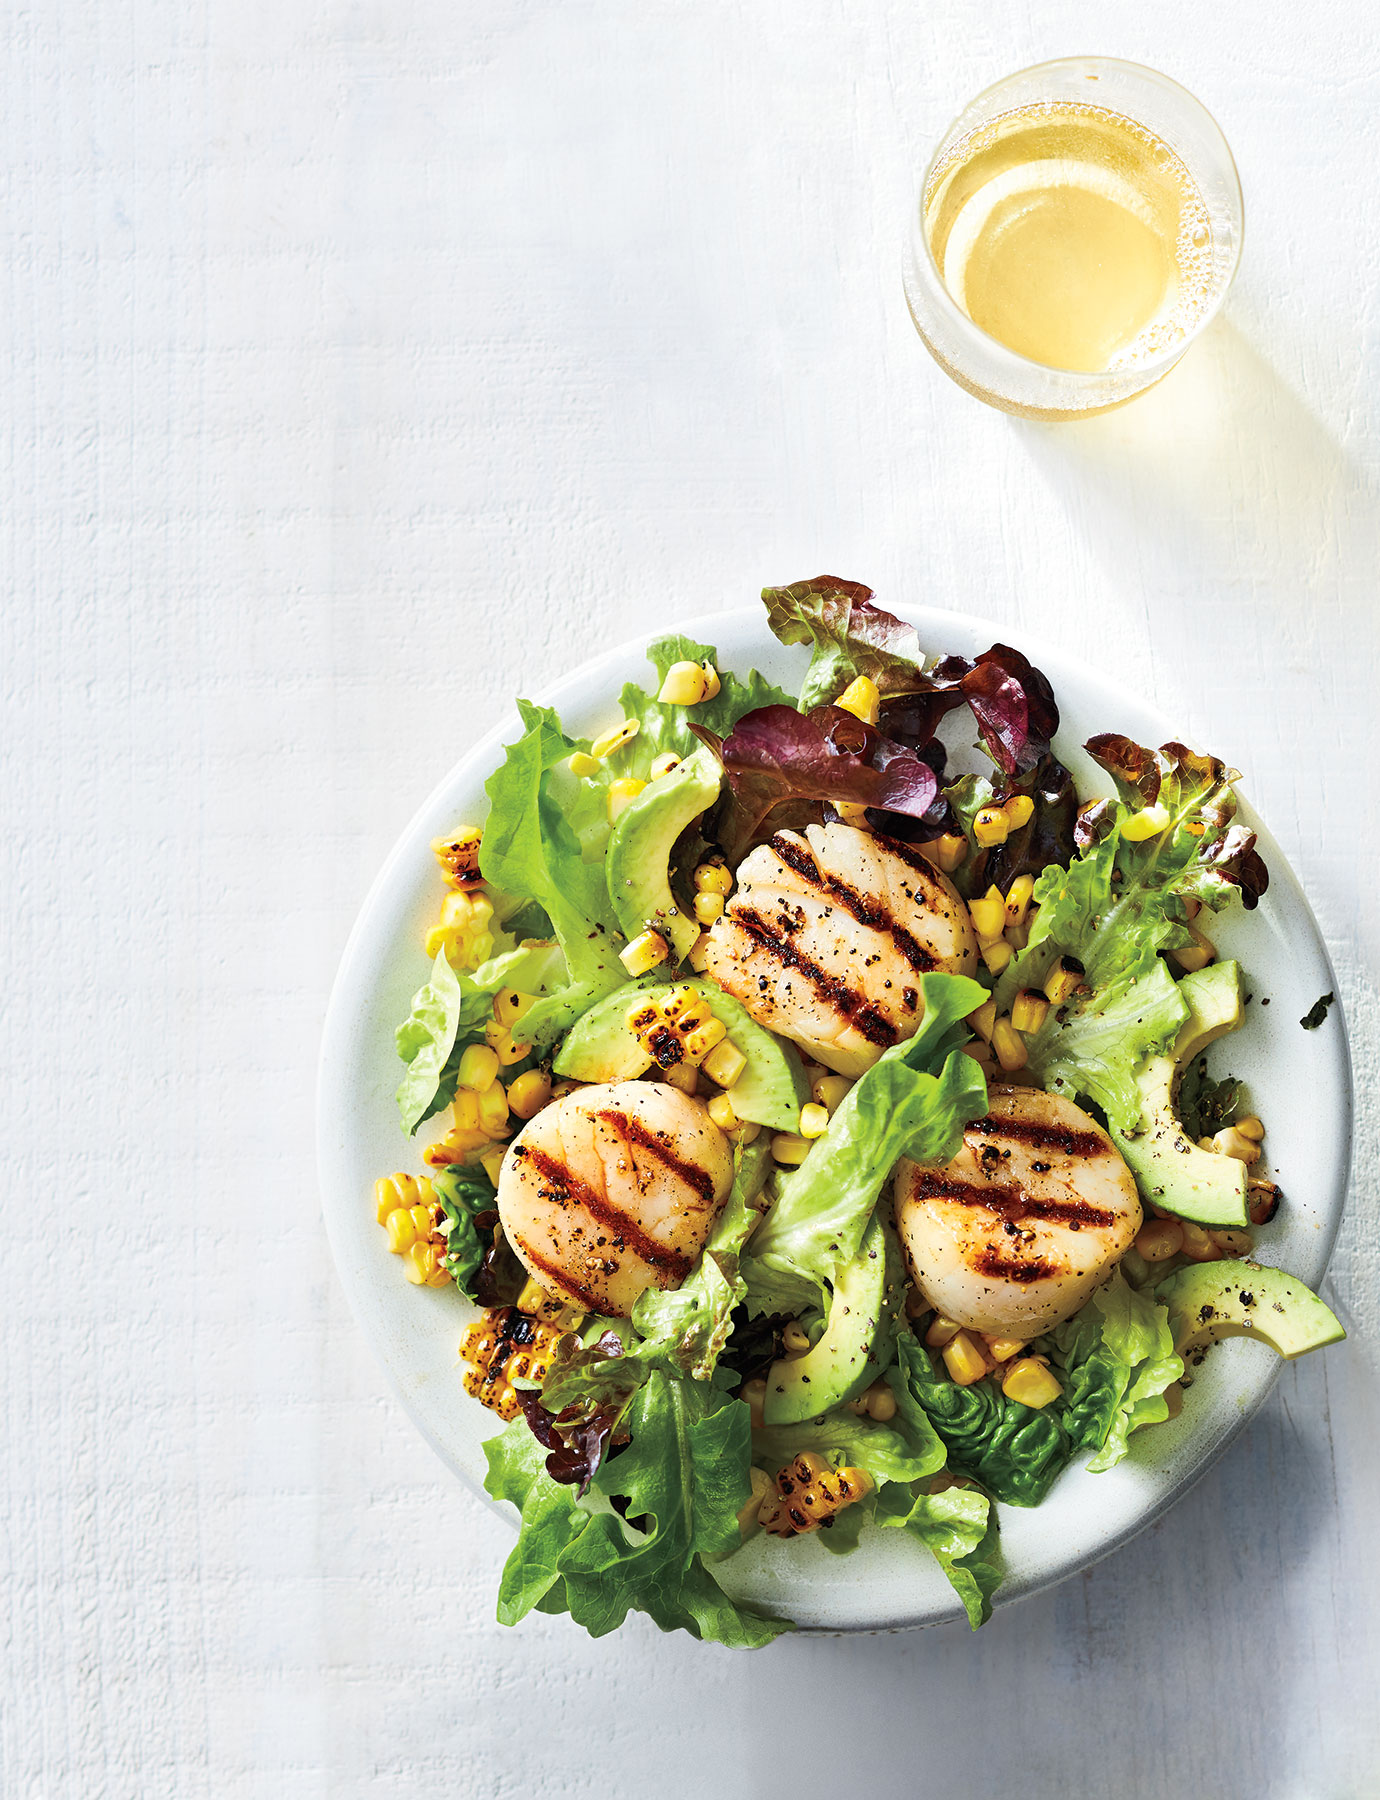 Grilled Scallops With Corn Salad